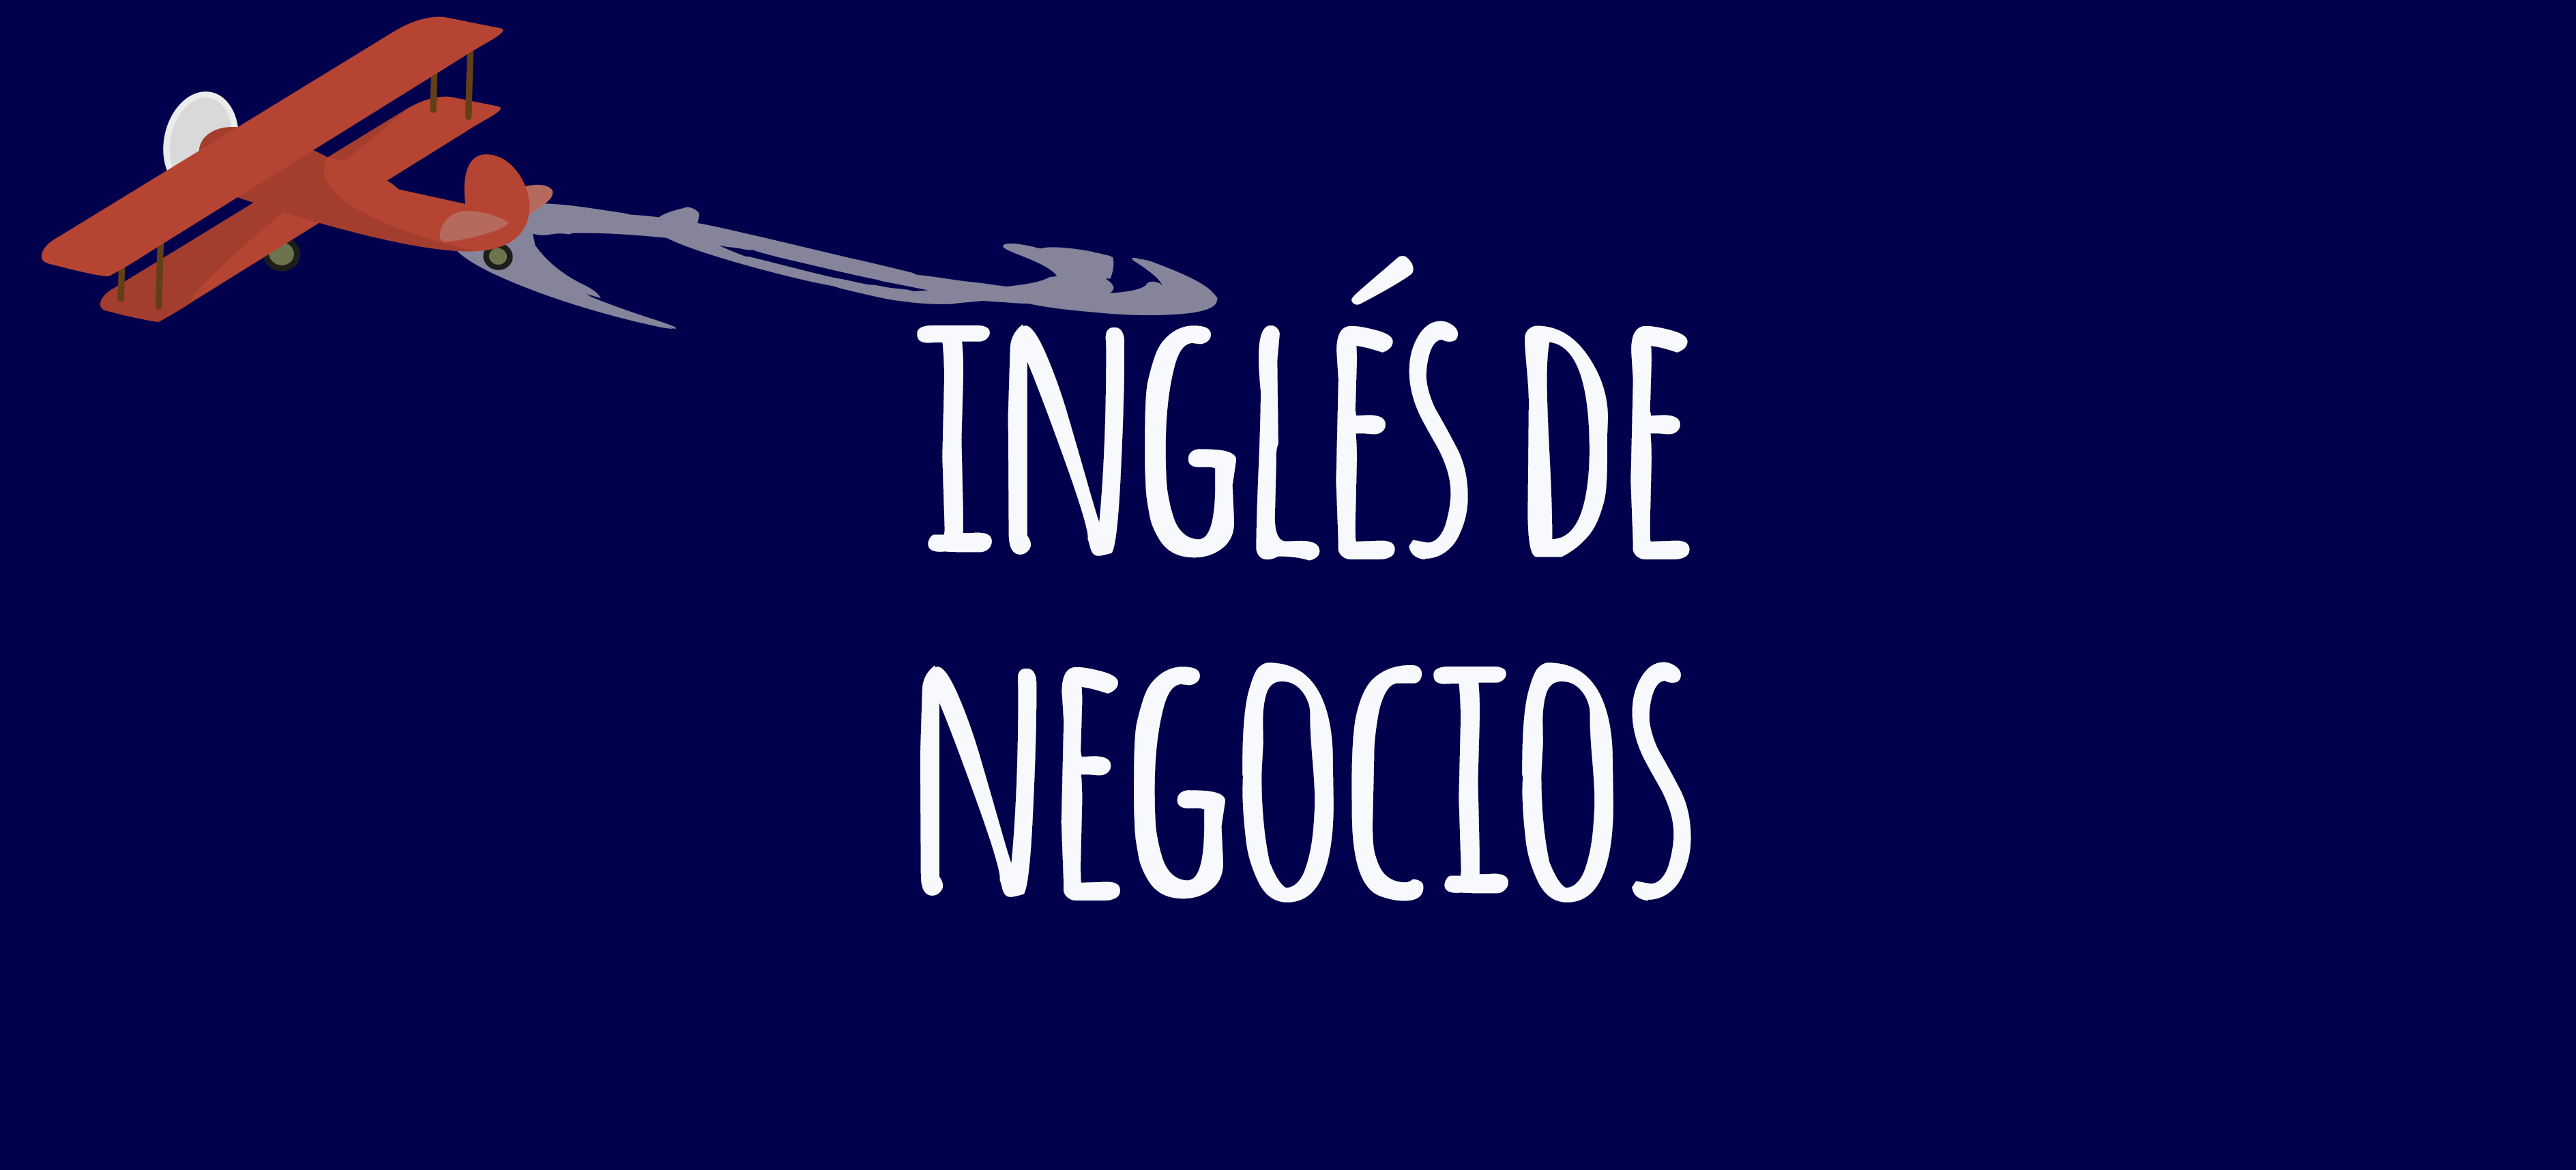 Inglés De Negocios Vocabulario Y Frases Learn Business English